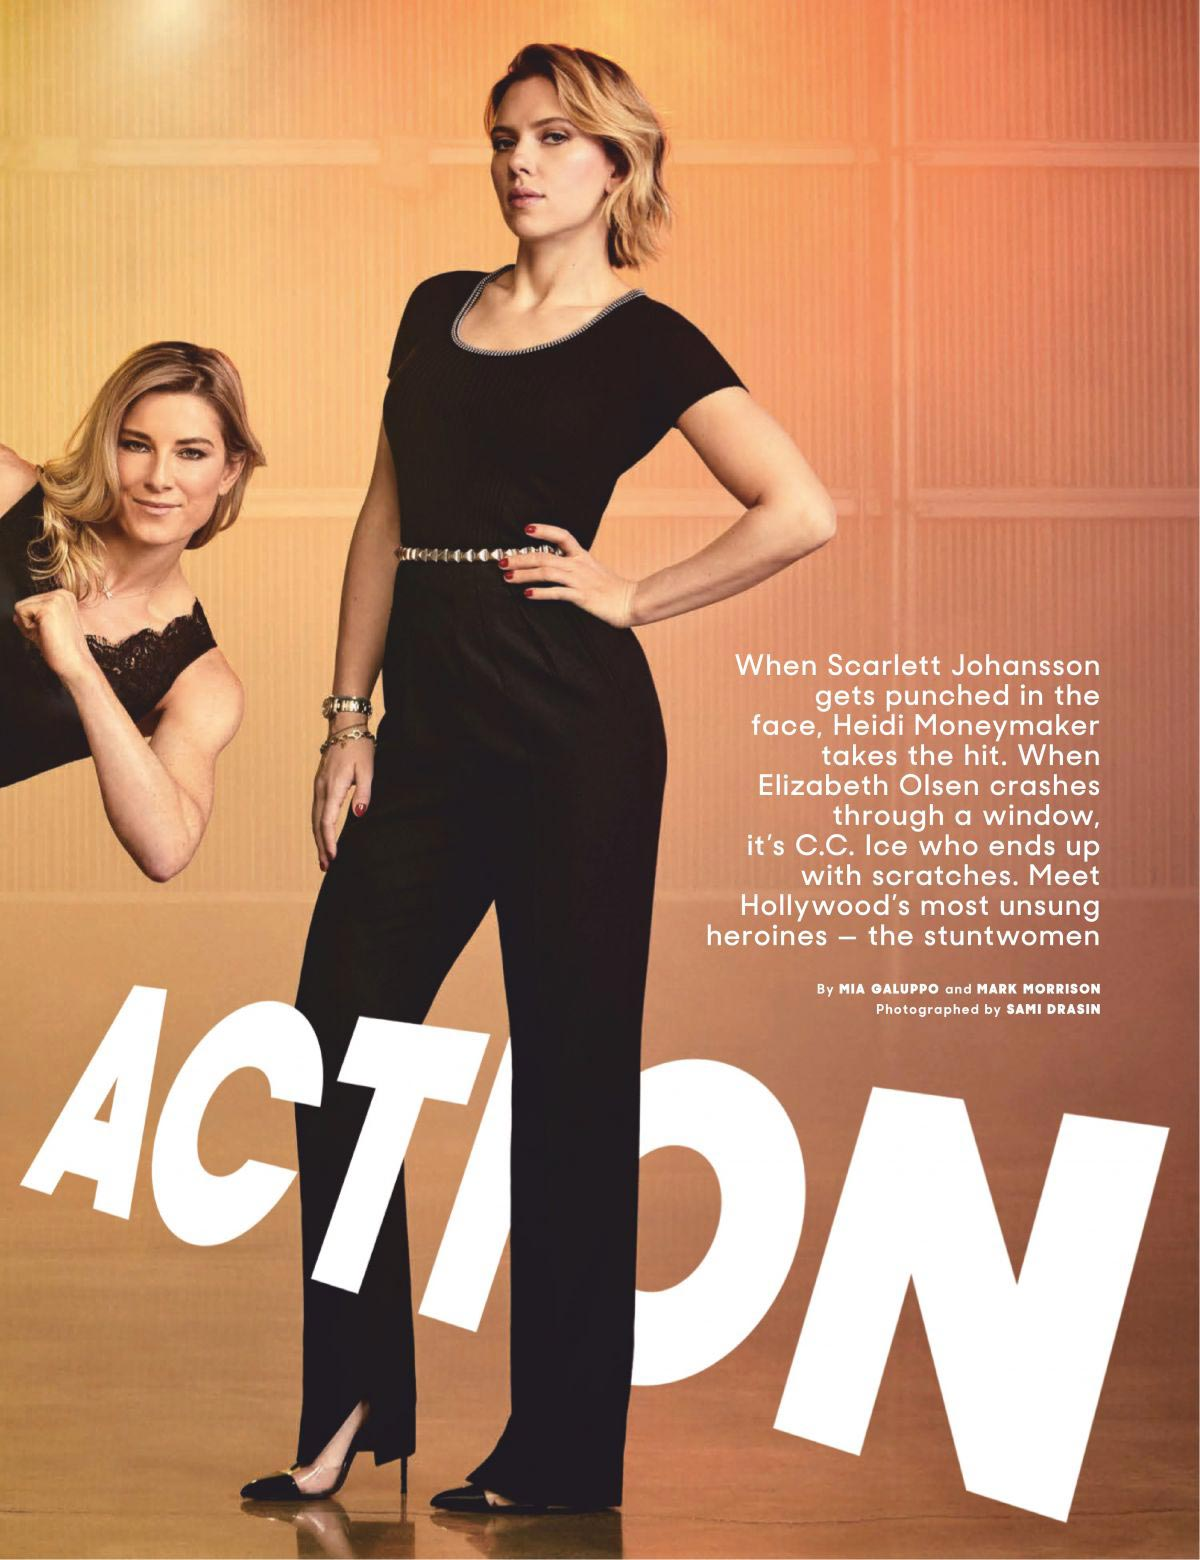 Scarlett Johansson and Heidi Moneymaker in The Hollywood Reporter Magazine, December 2018 1